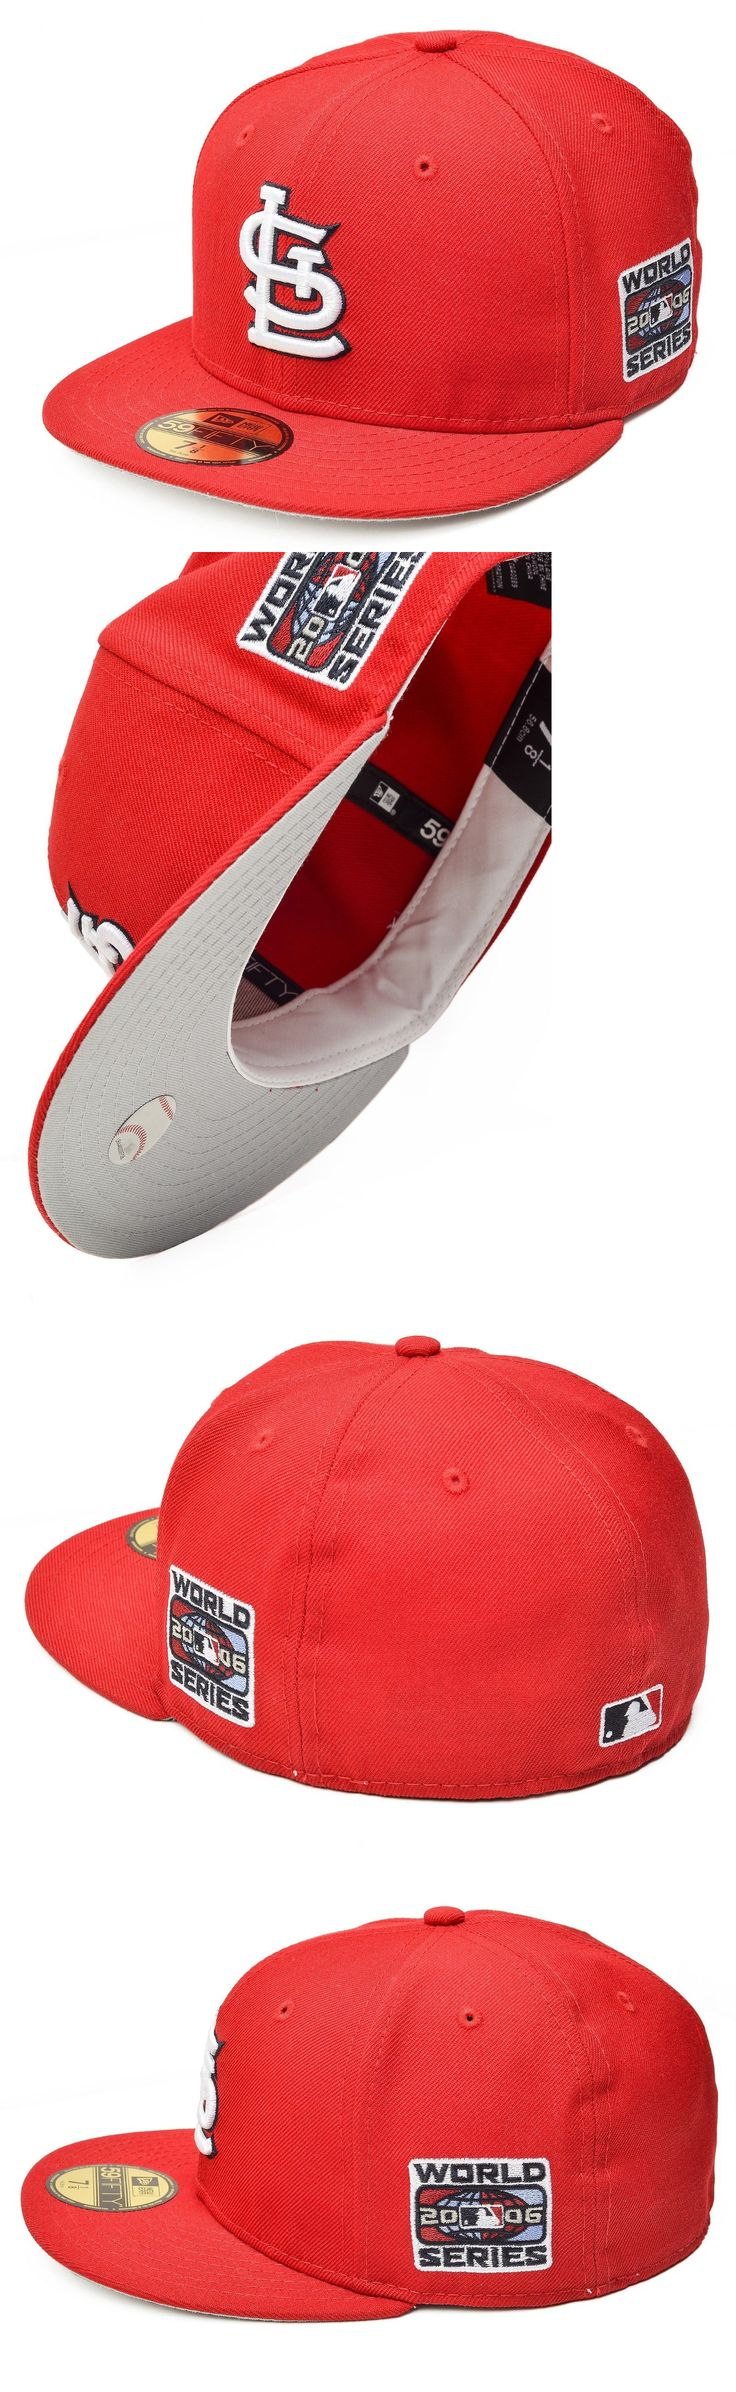 Baseball-MLB 24410: New Era St. Louis Cardinals 59Fifty Mlb World Series Fitted (Stlcar World 2006) -> BUY IT NOW ONLY: $32.95 on eBay!